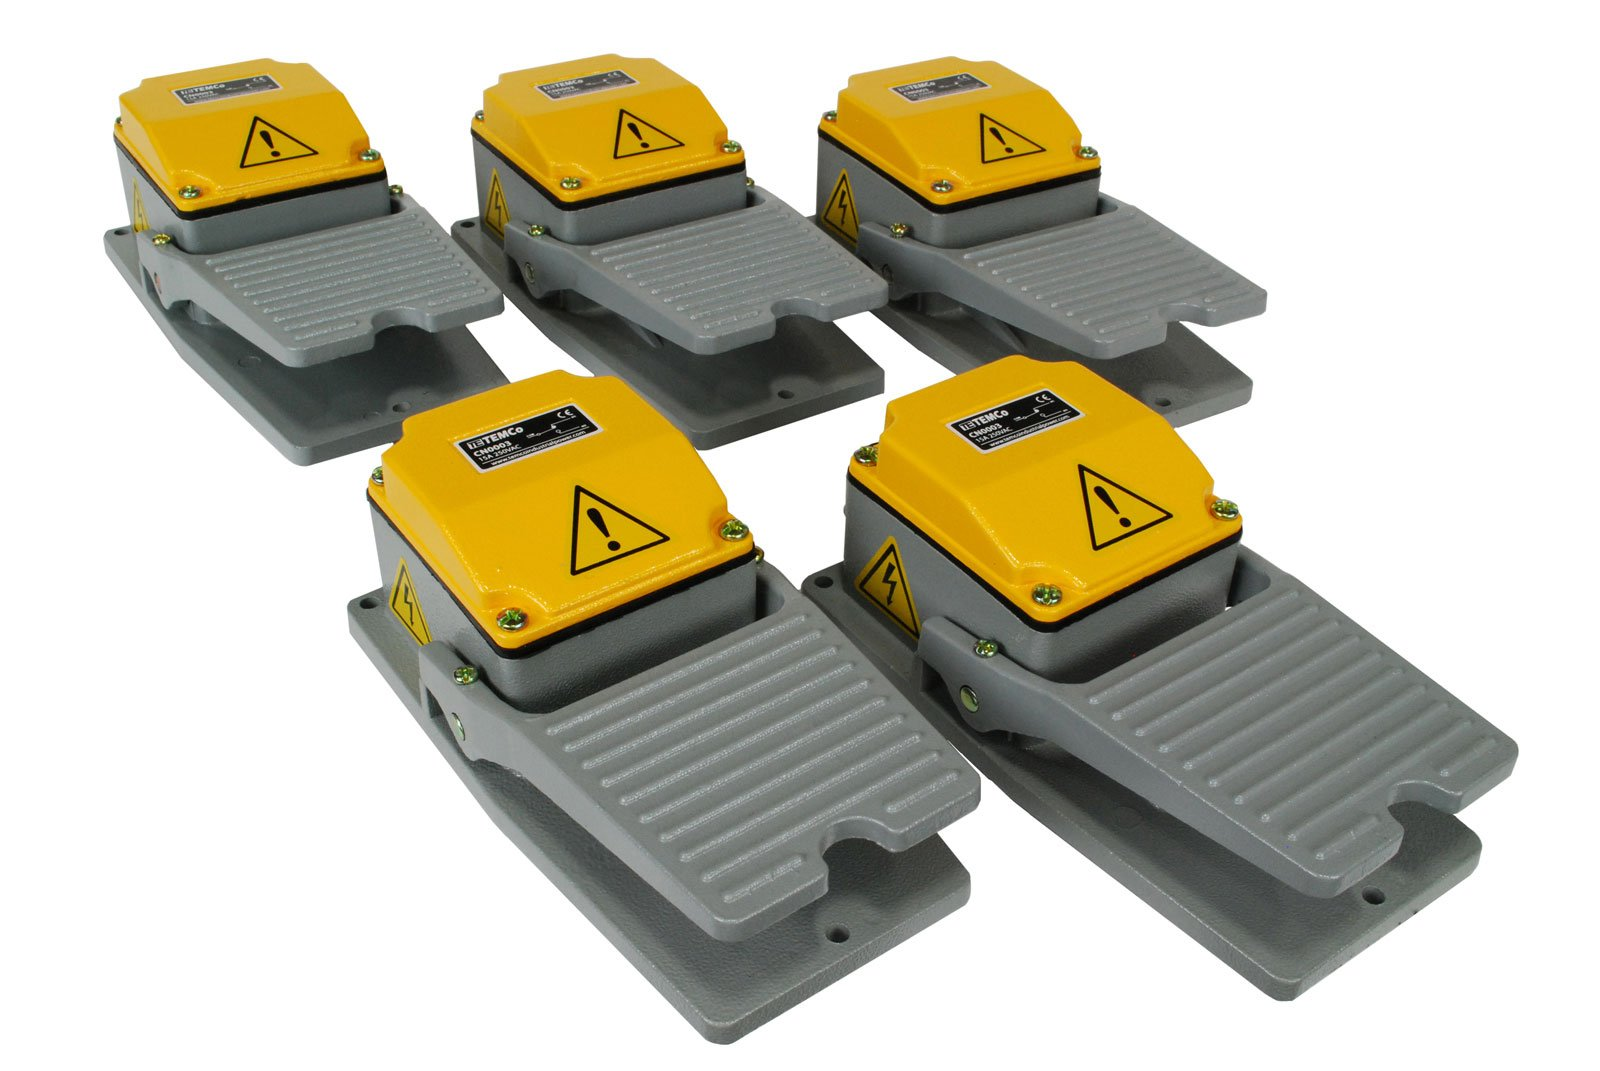 TEMCo Heavy Duty Foot Switch 5 QTY - Cast Aluminum Foot Switch 15A SPDT Electric Pedal Momentary 5 YEAR WARRANTY